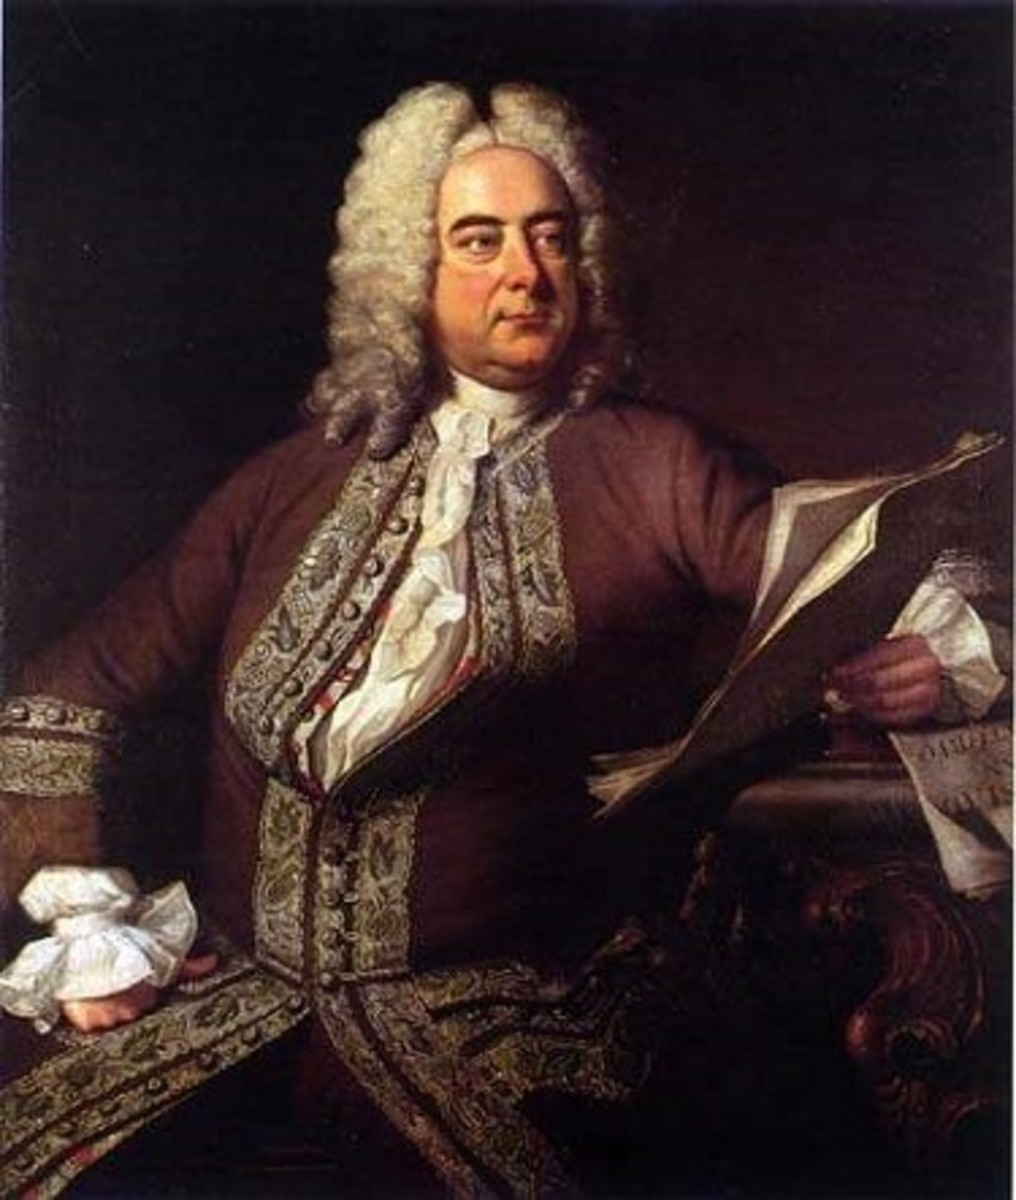 Classical Composer Handel used God's Name